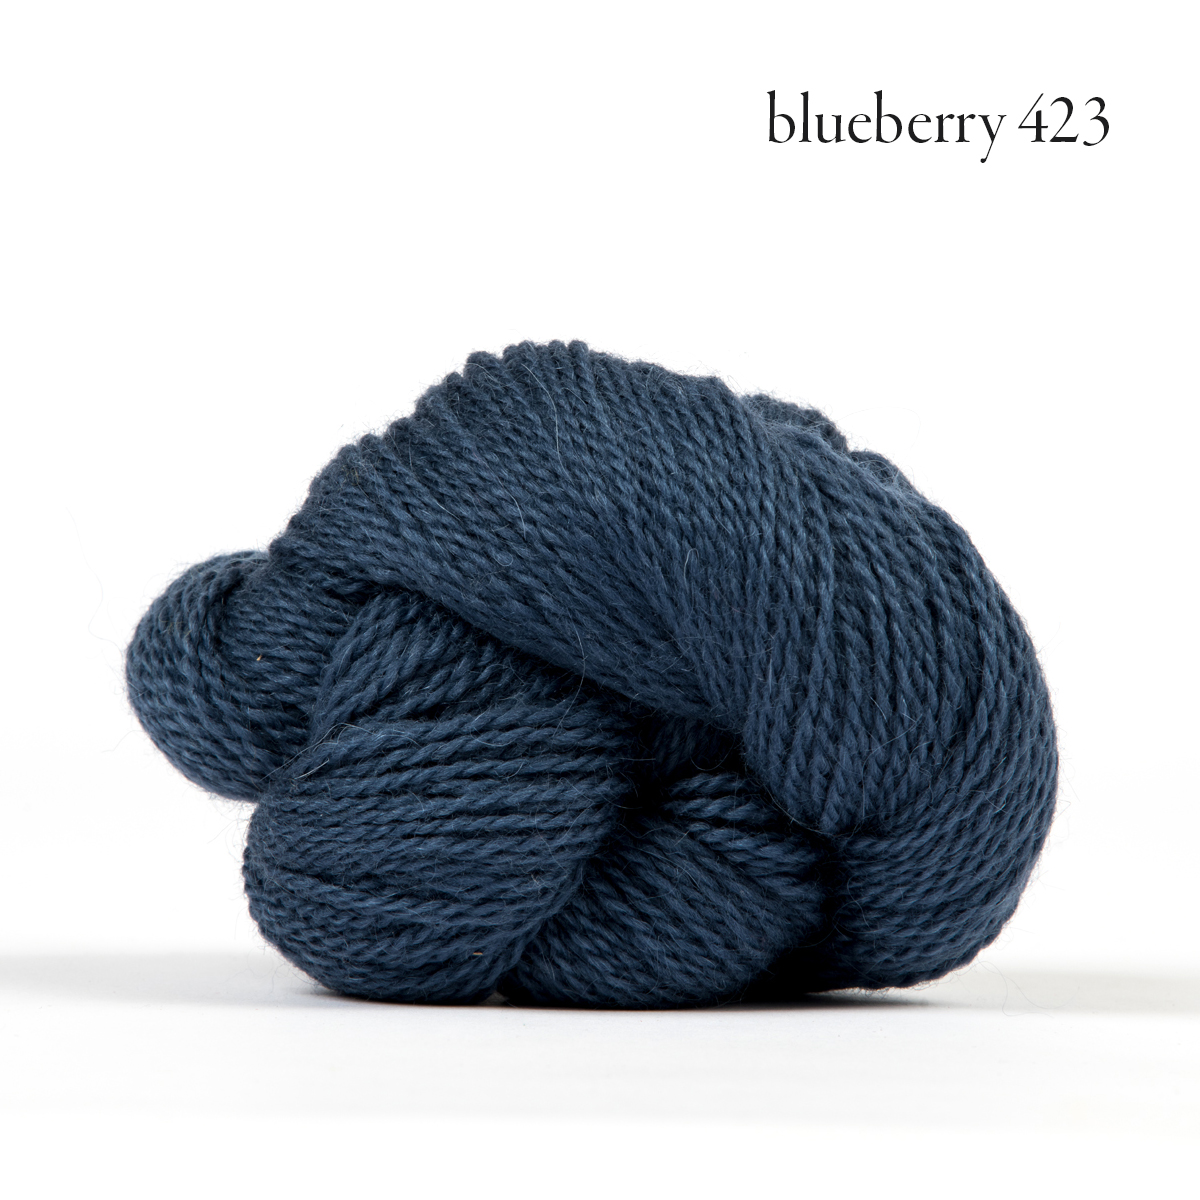 Andorra blueberry.jpg